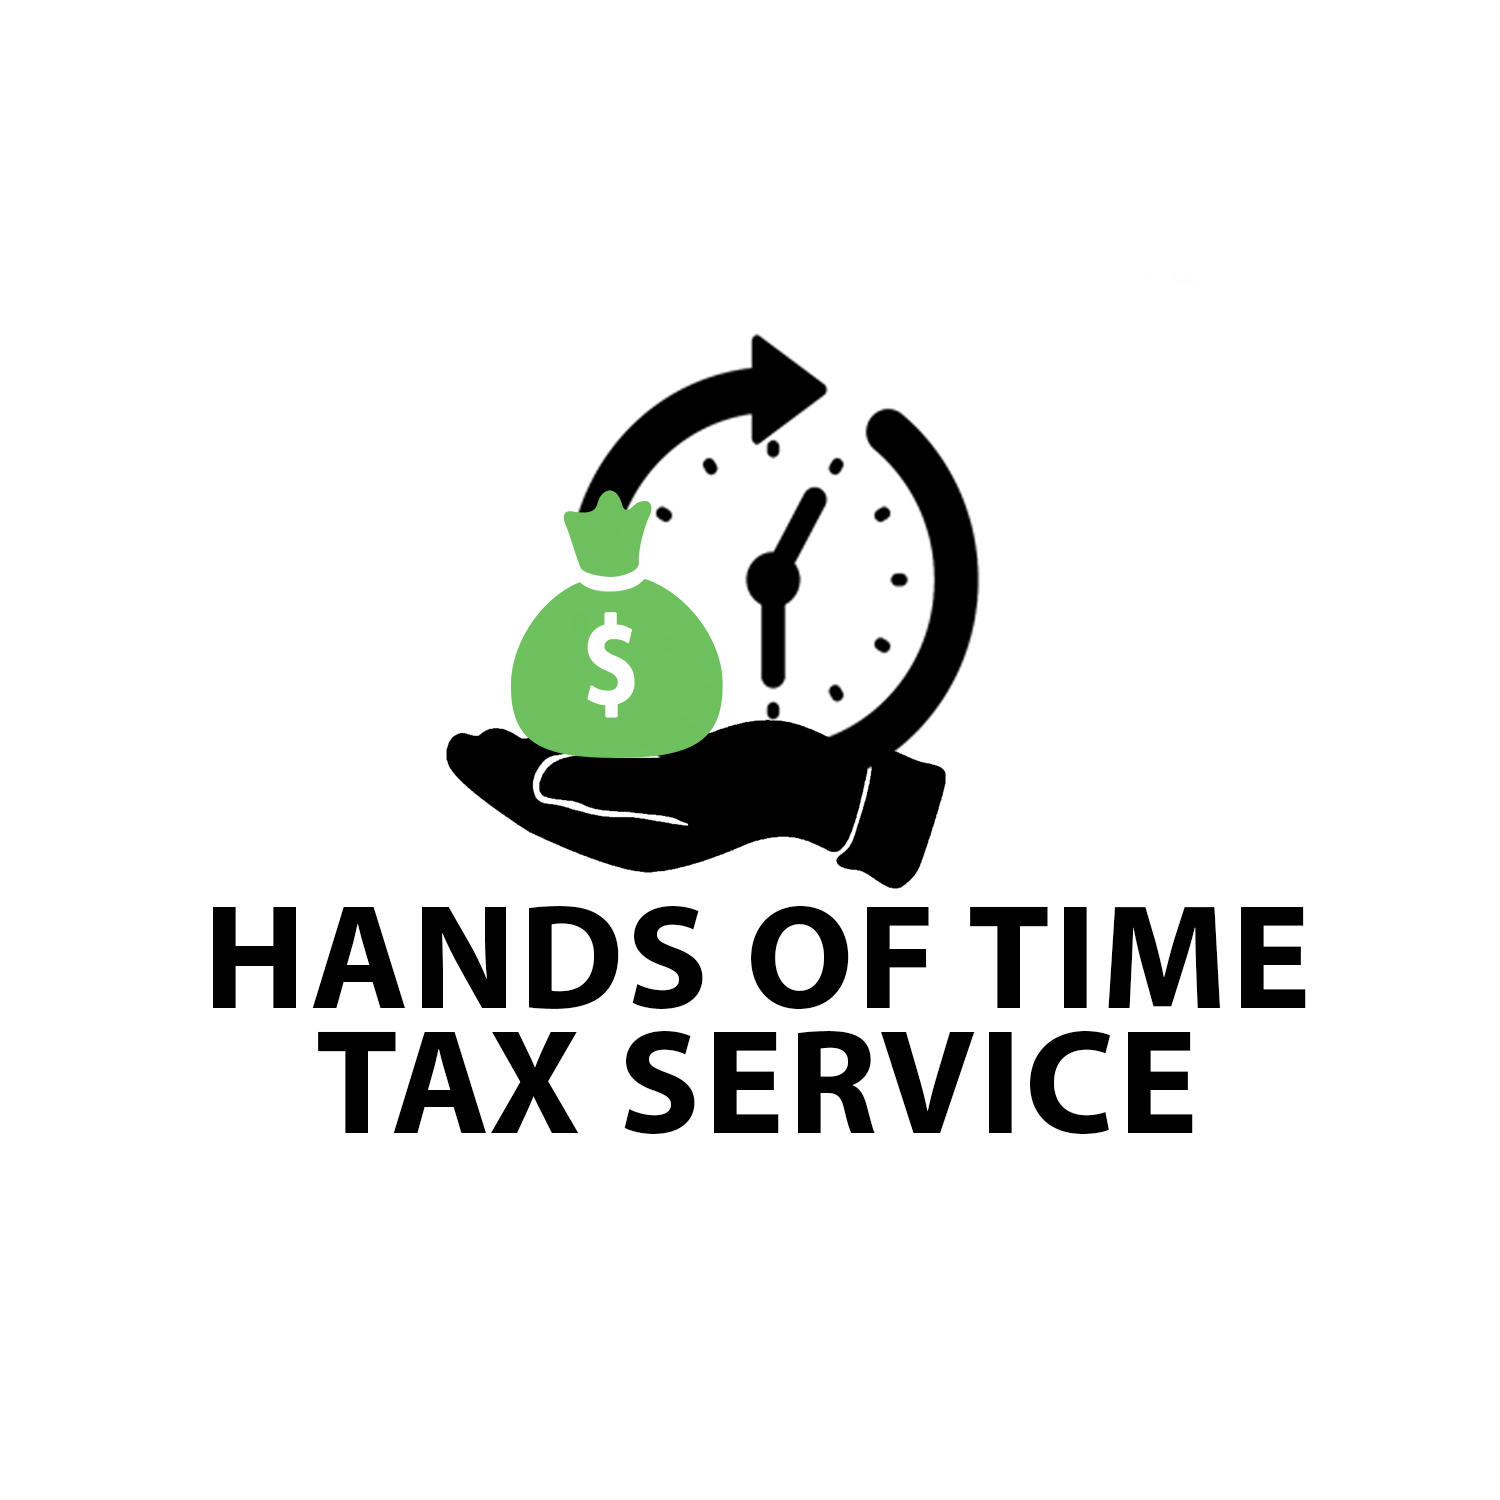 Hands of Time Tax Service